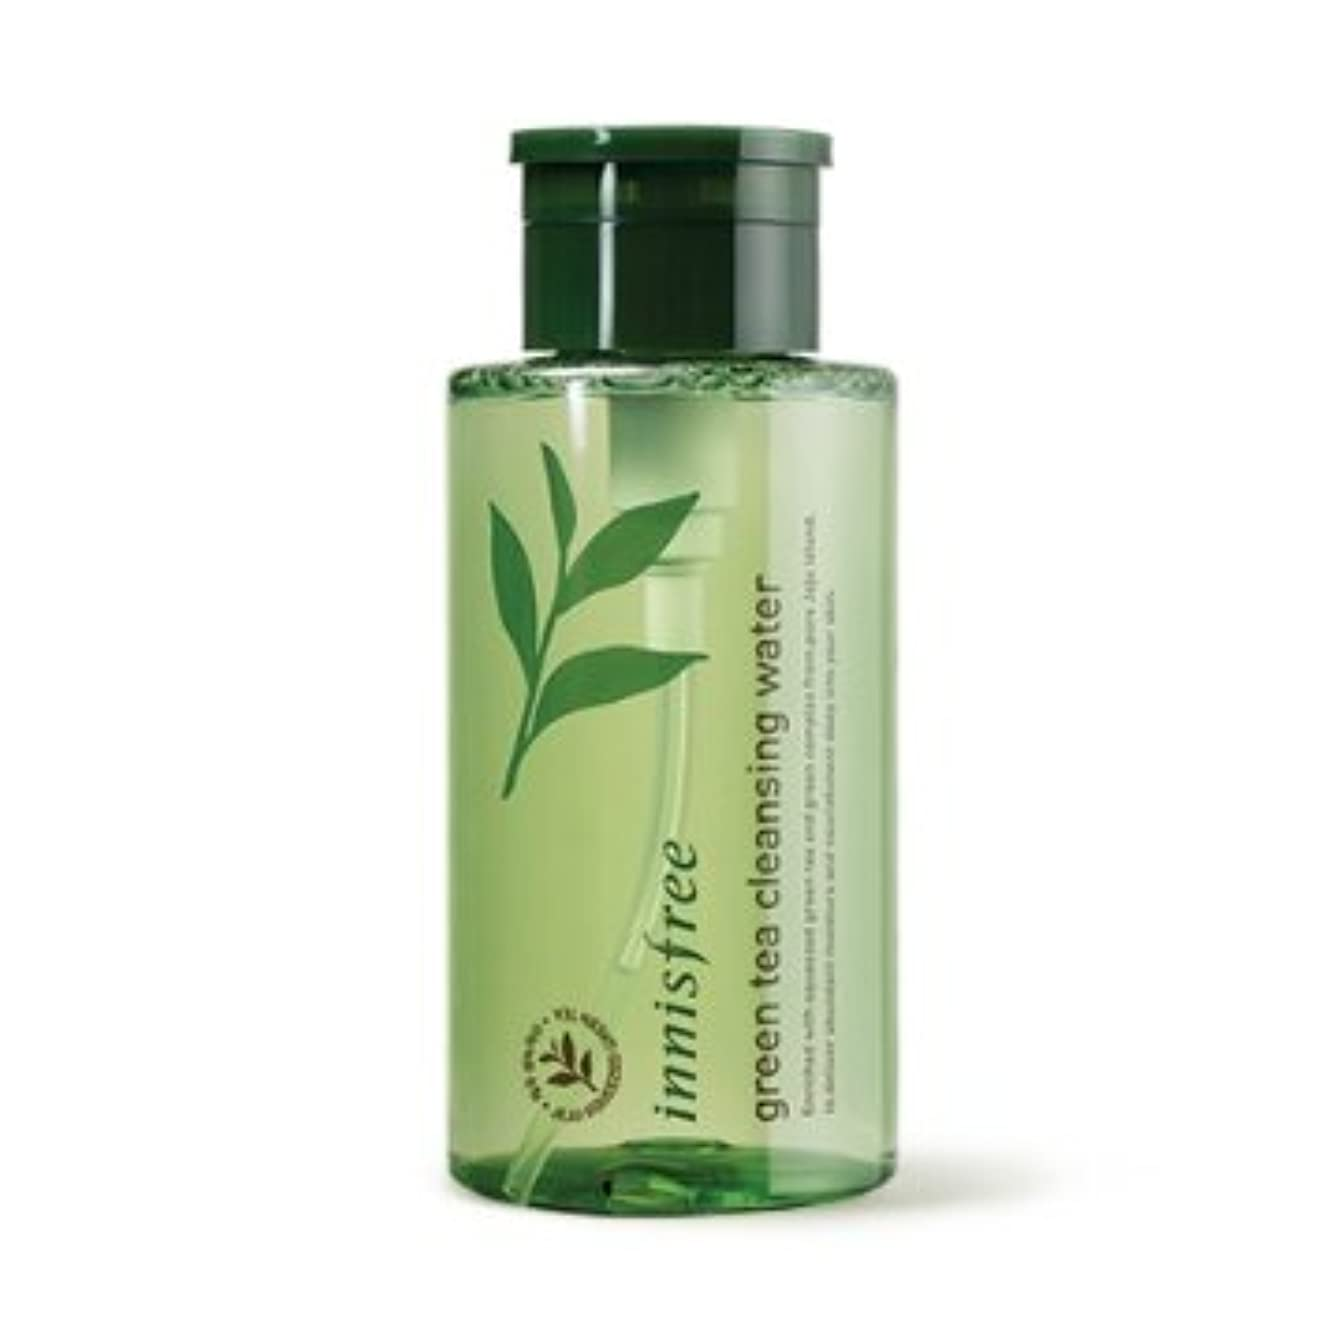 【イニスフリー】Innisfree green tea cleansing water - 300ml(300ml (韓国直送品) (SHOPPINGINSTAGRAM)